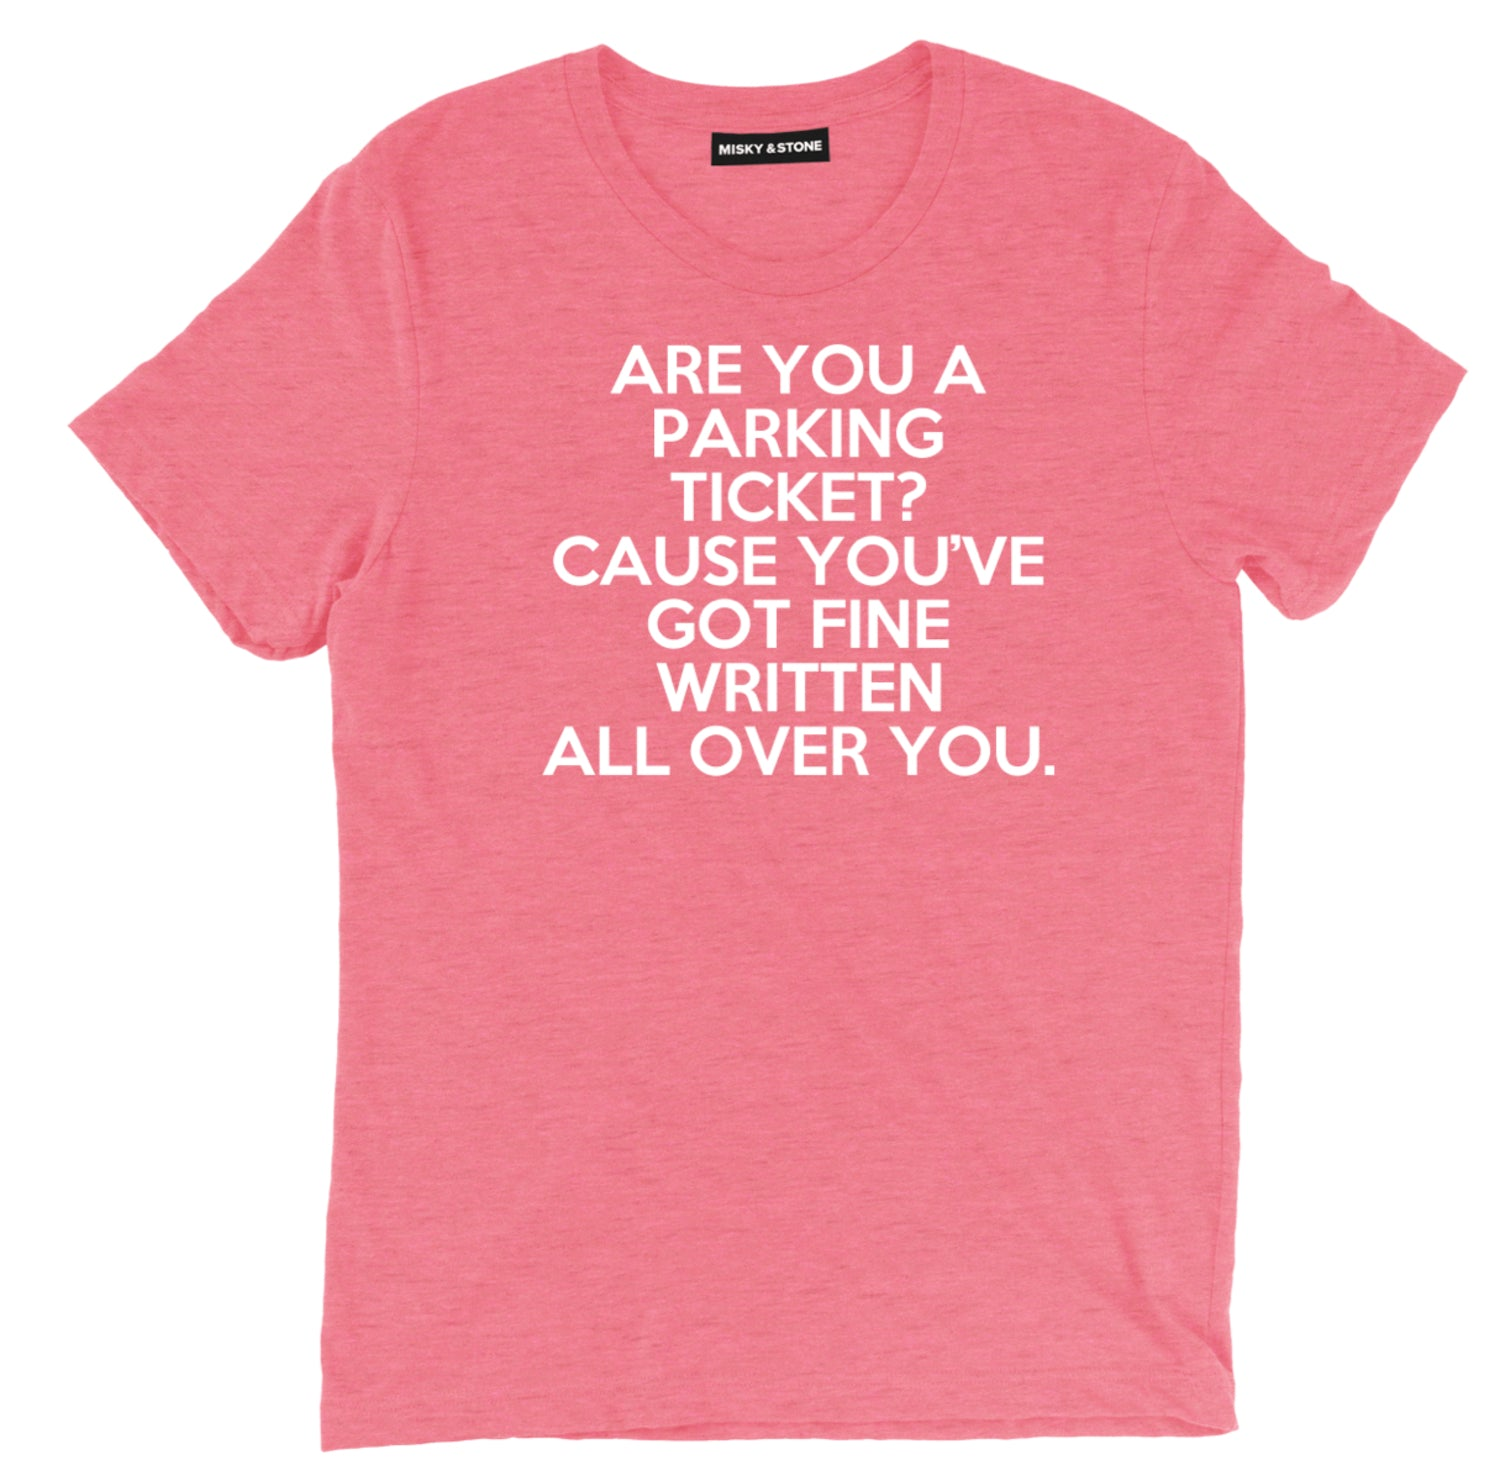 are you a parking ticket sarcastic t shirts, sarcastic shirts, youve got fine written all over you sarcastic tee shirts, pick up line sarcastic tees, sarcastic t shirt sayings, sarcastic t shirts quotes, funny sarcastic t shirts,